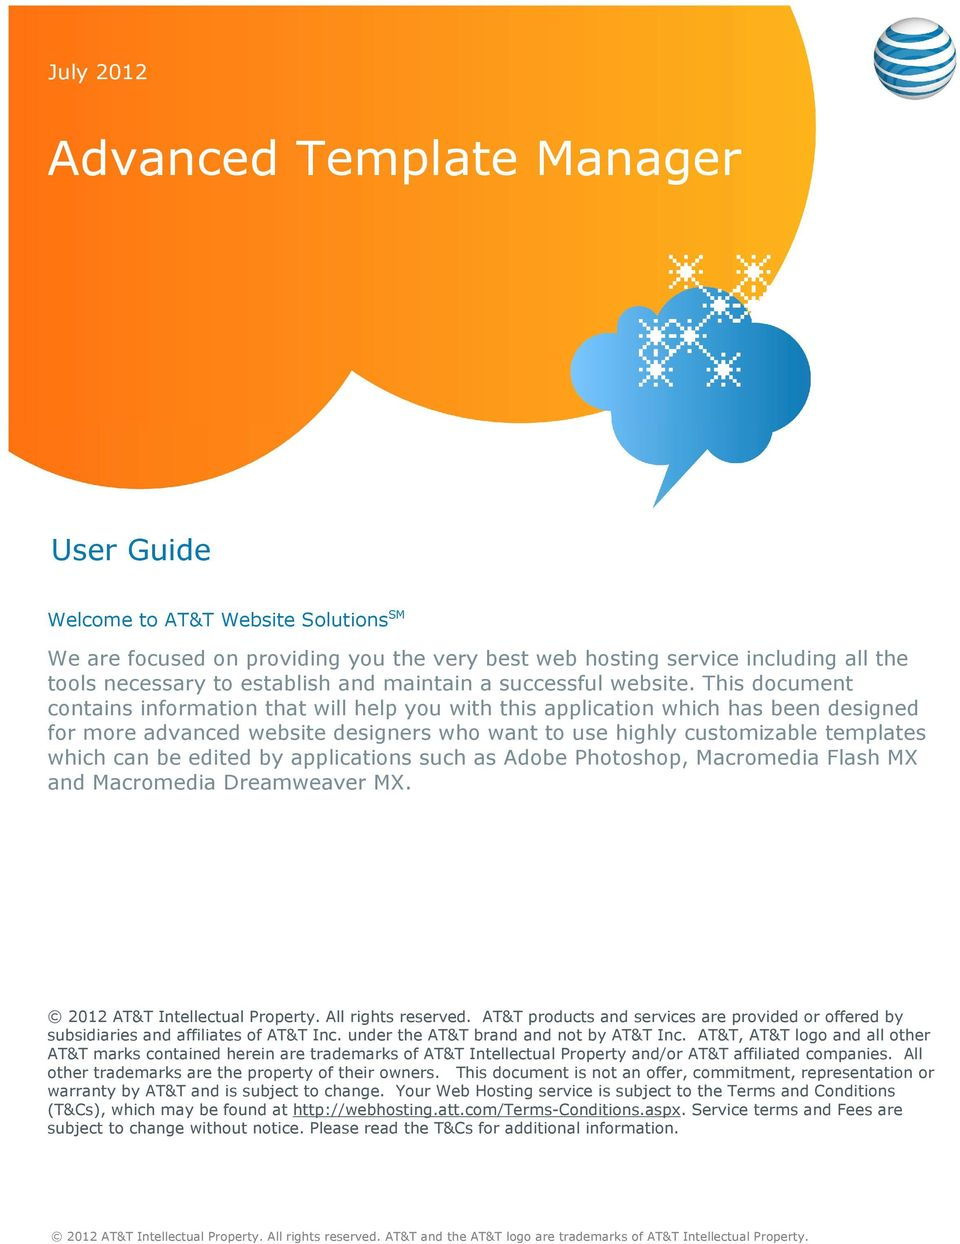 Advanced Template Manager - PDF